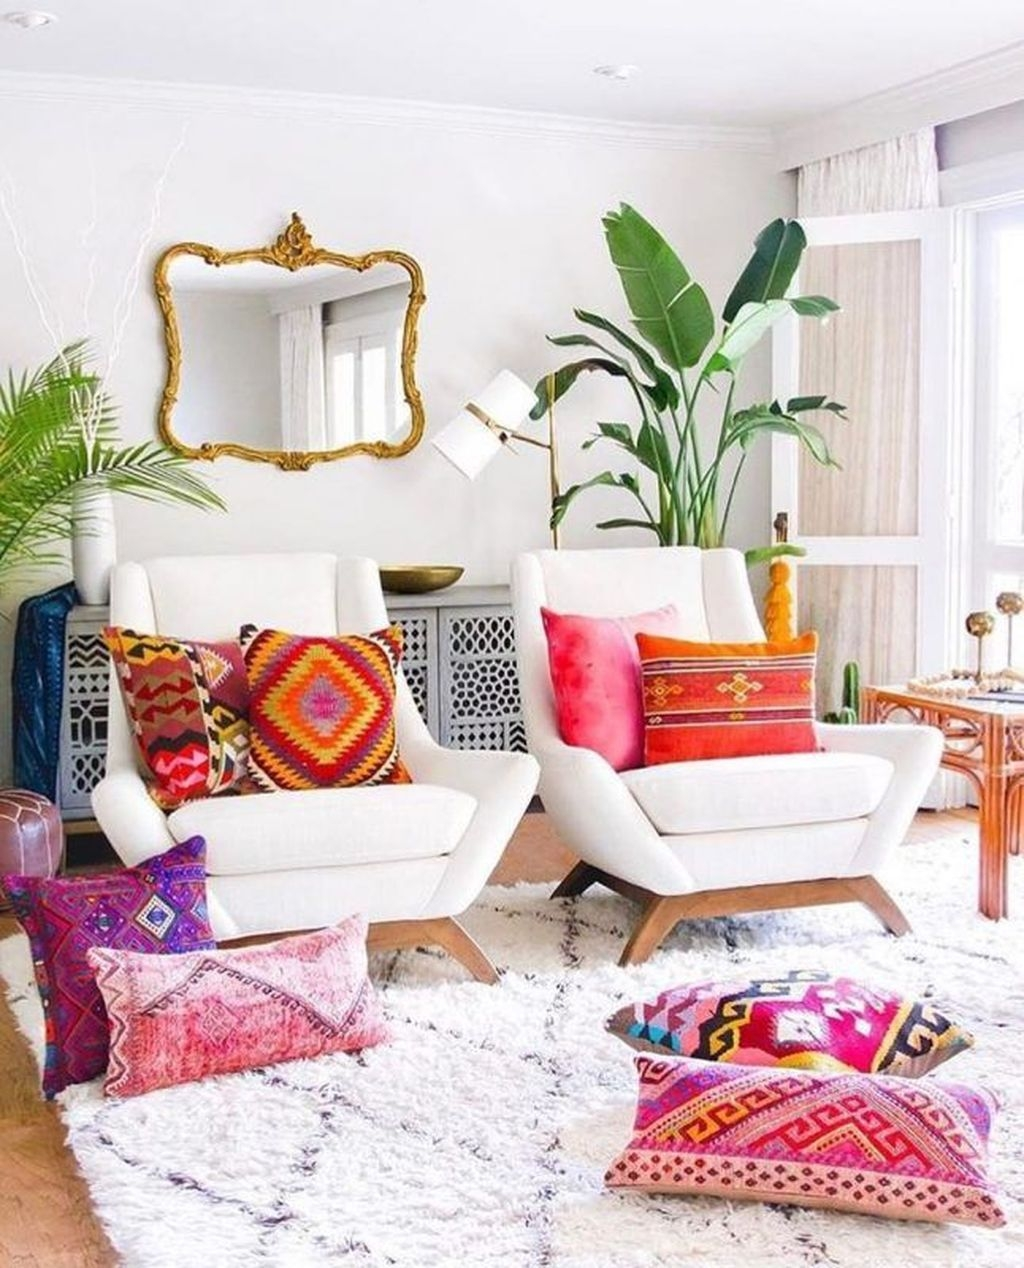 50 Best Home Decorating Ideas: 50 The Best Living Room Decorating Ideas Trends 2019